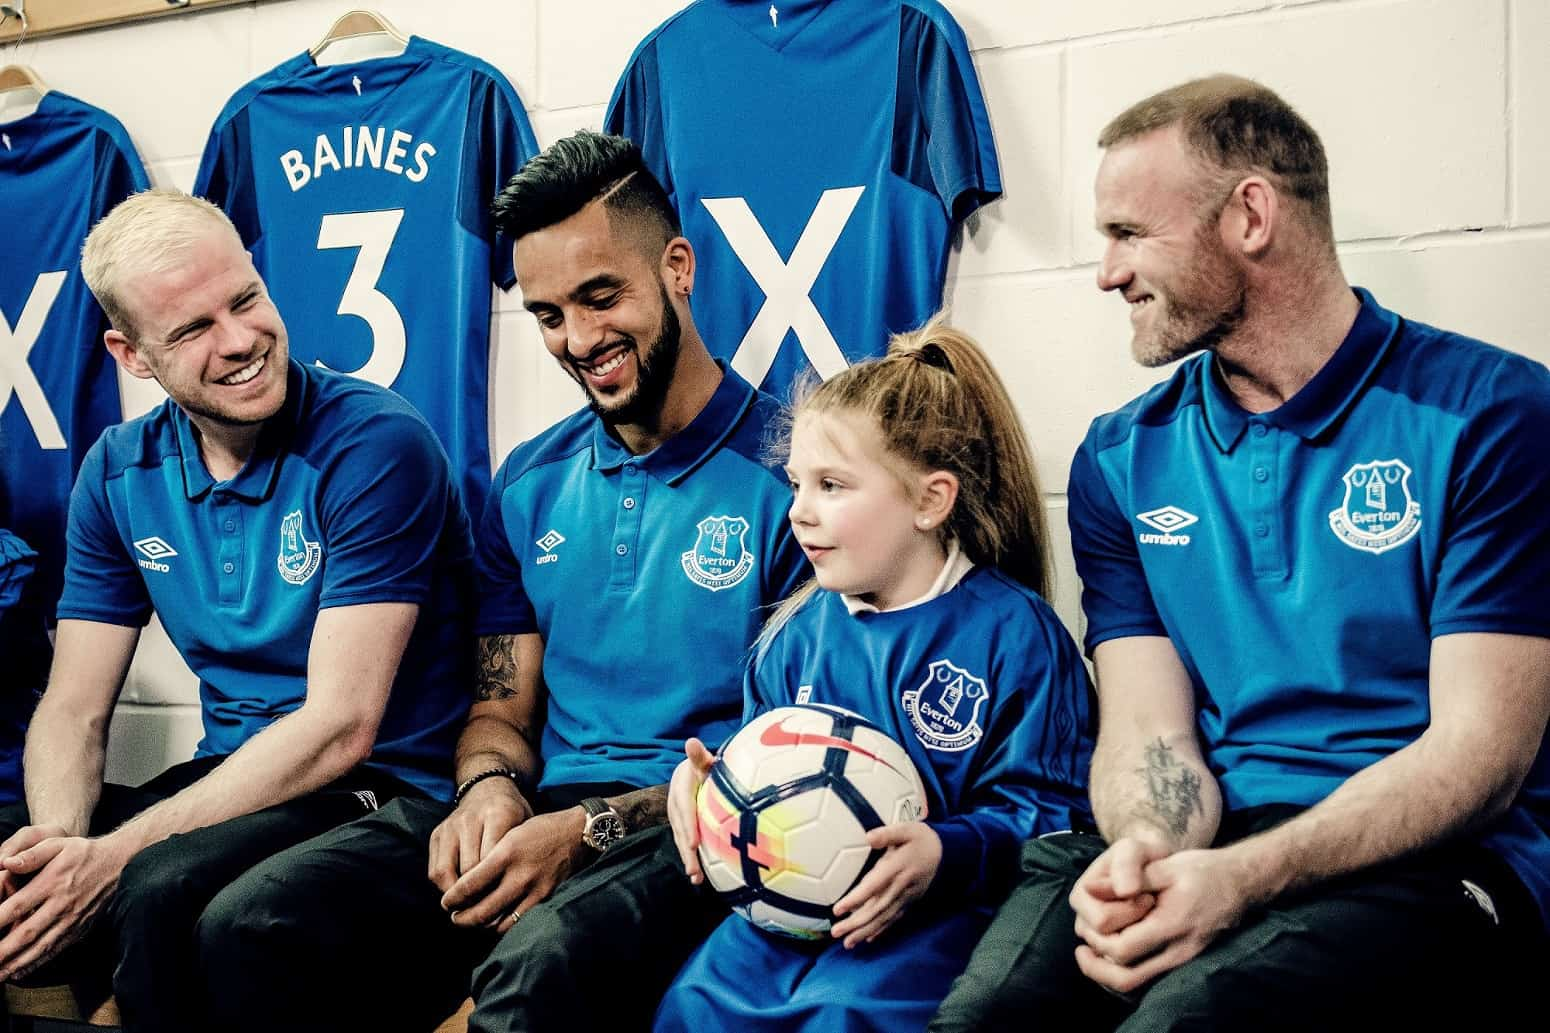 Everton FC's Davy Klaasen, Theo Walcott and Wayne Rooney surprise a young fan as part of the Premier League's Best Lesson Ever